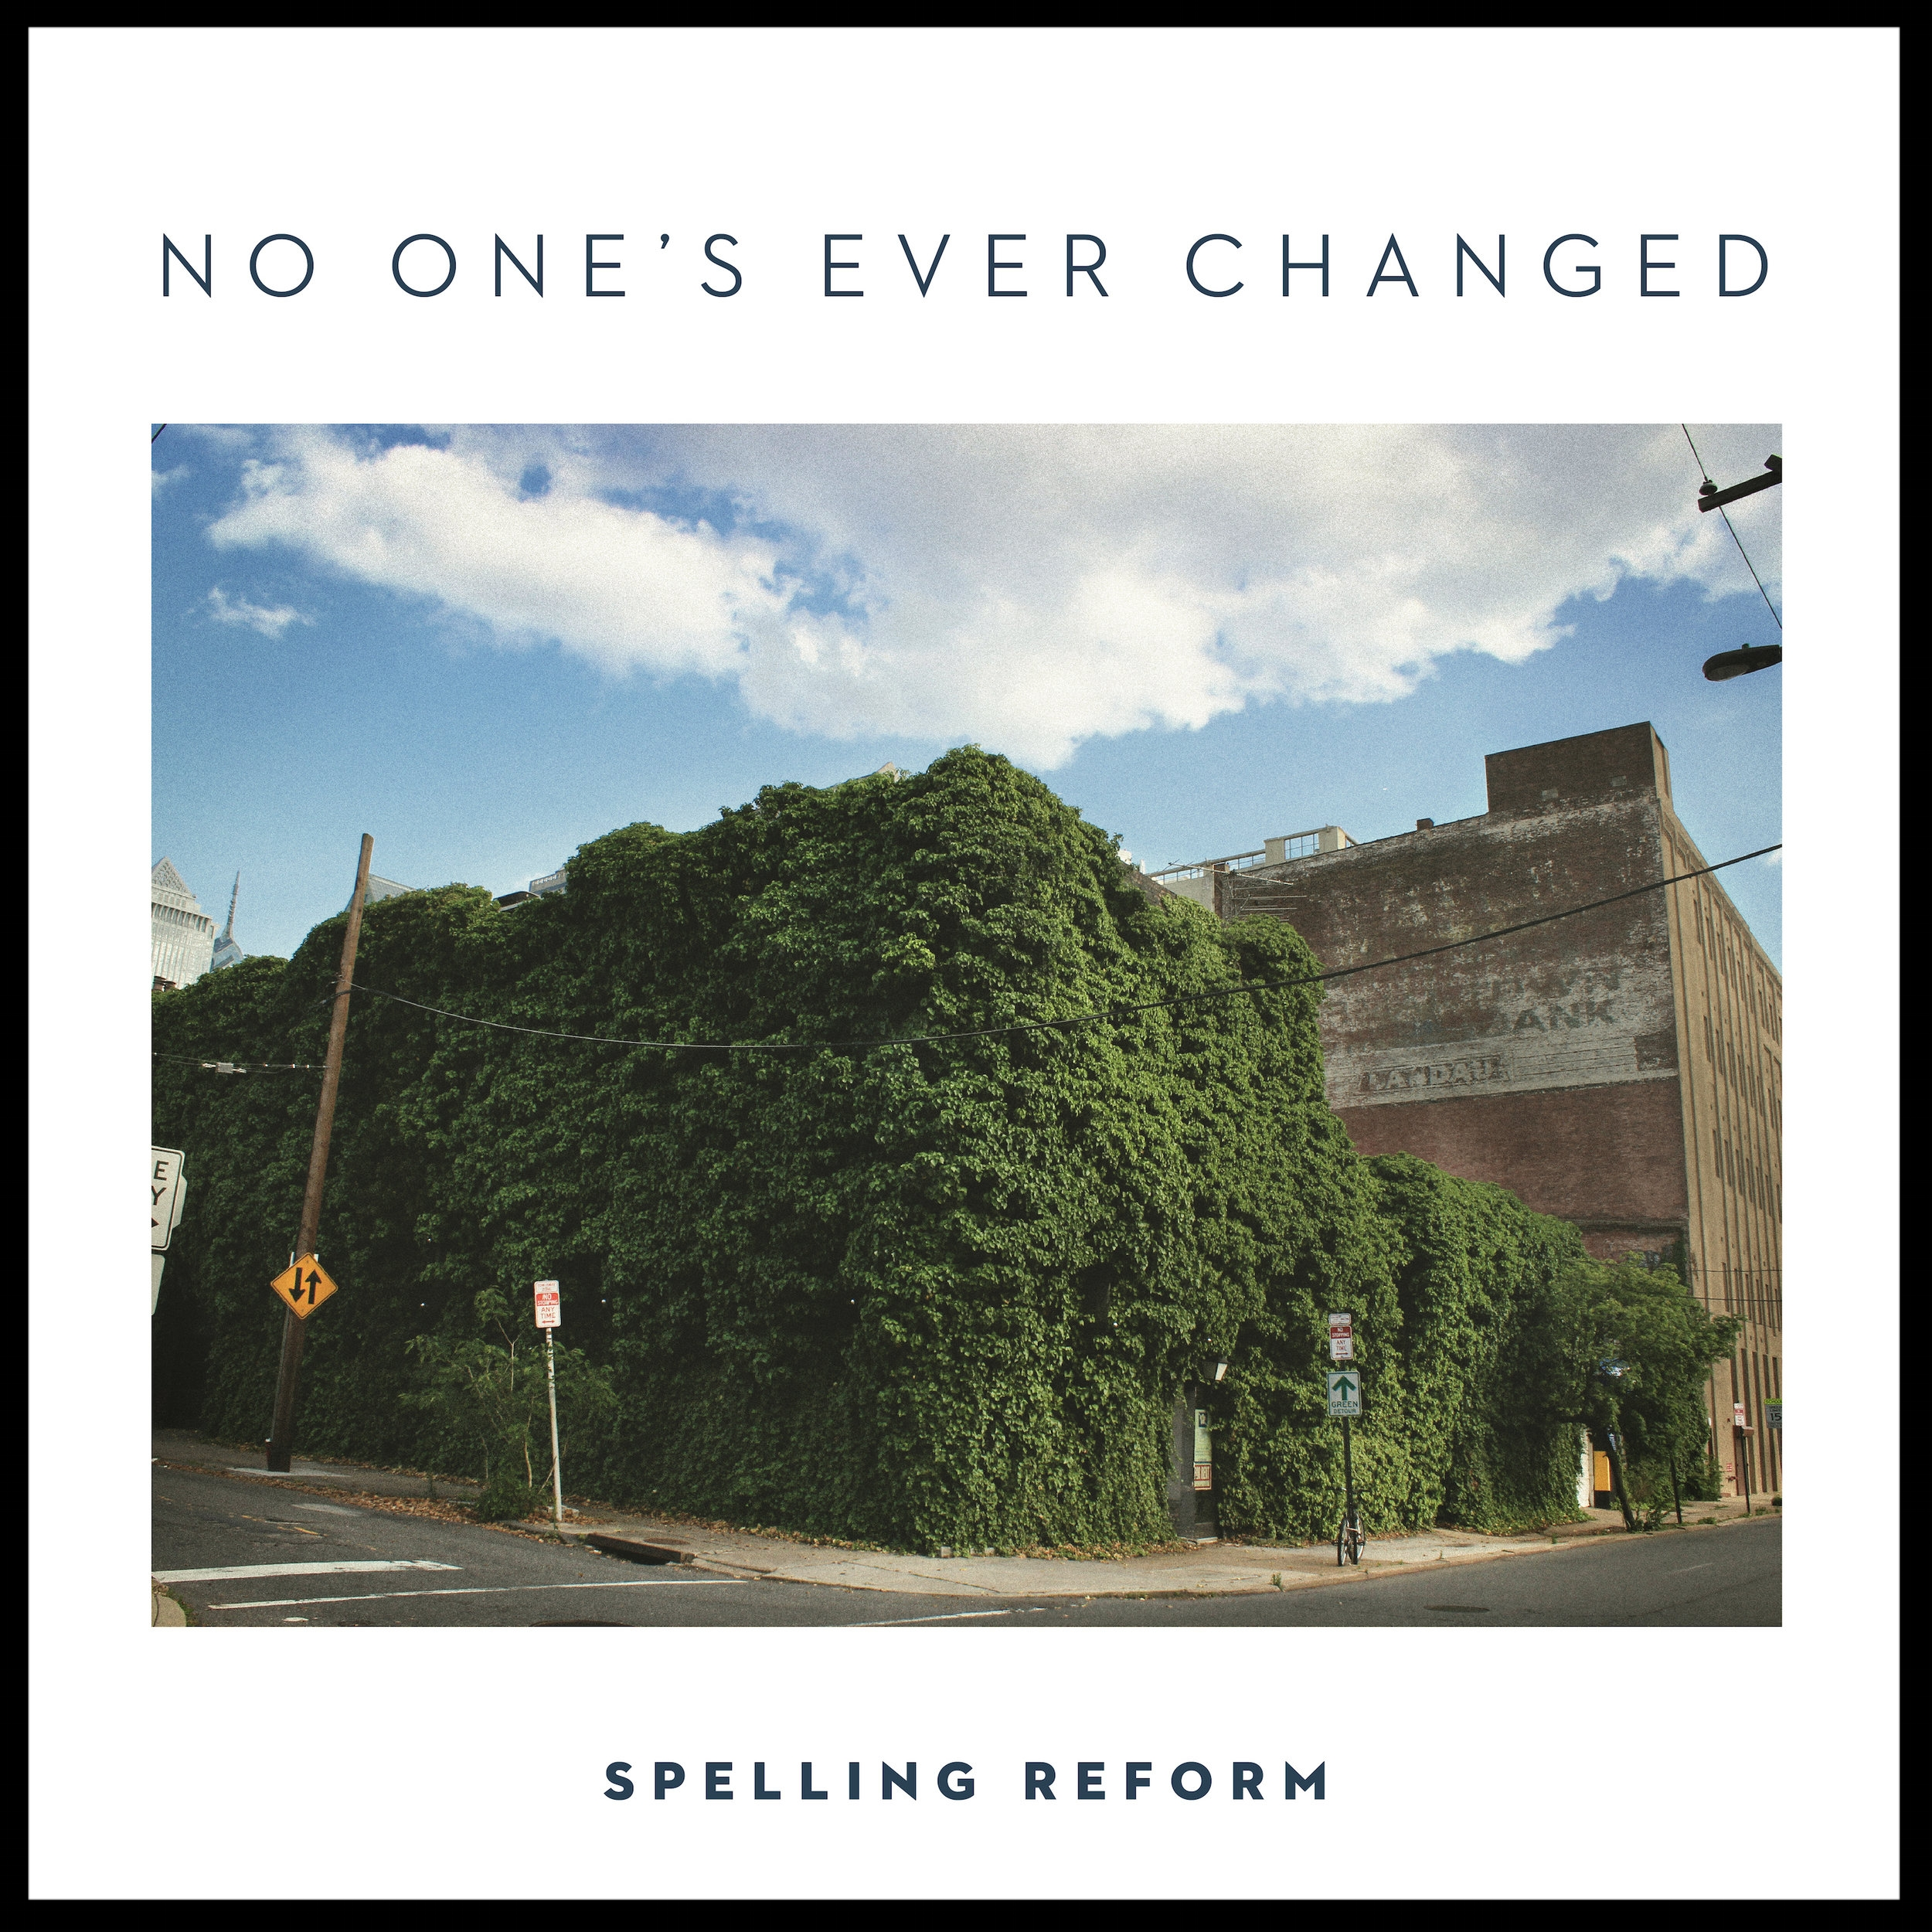 spelling reform - No one's ever changed